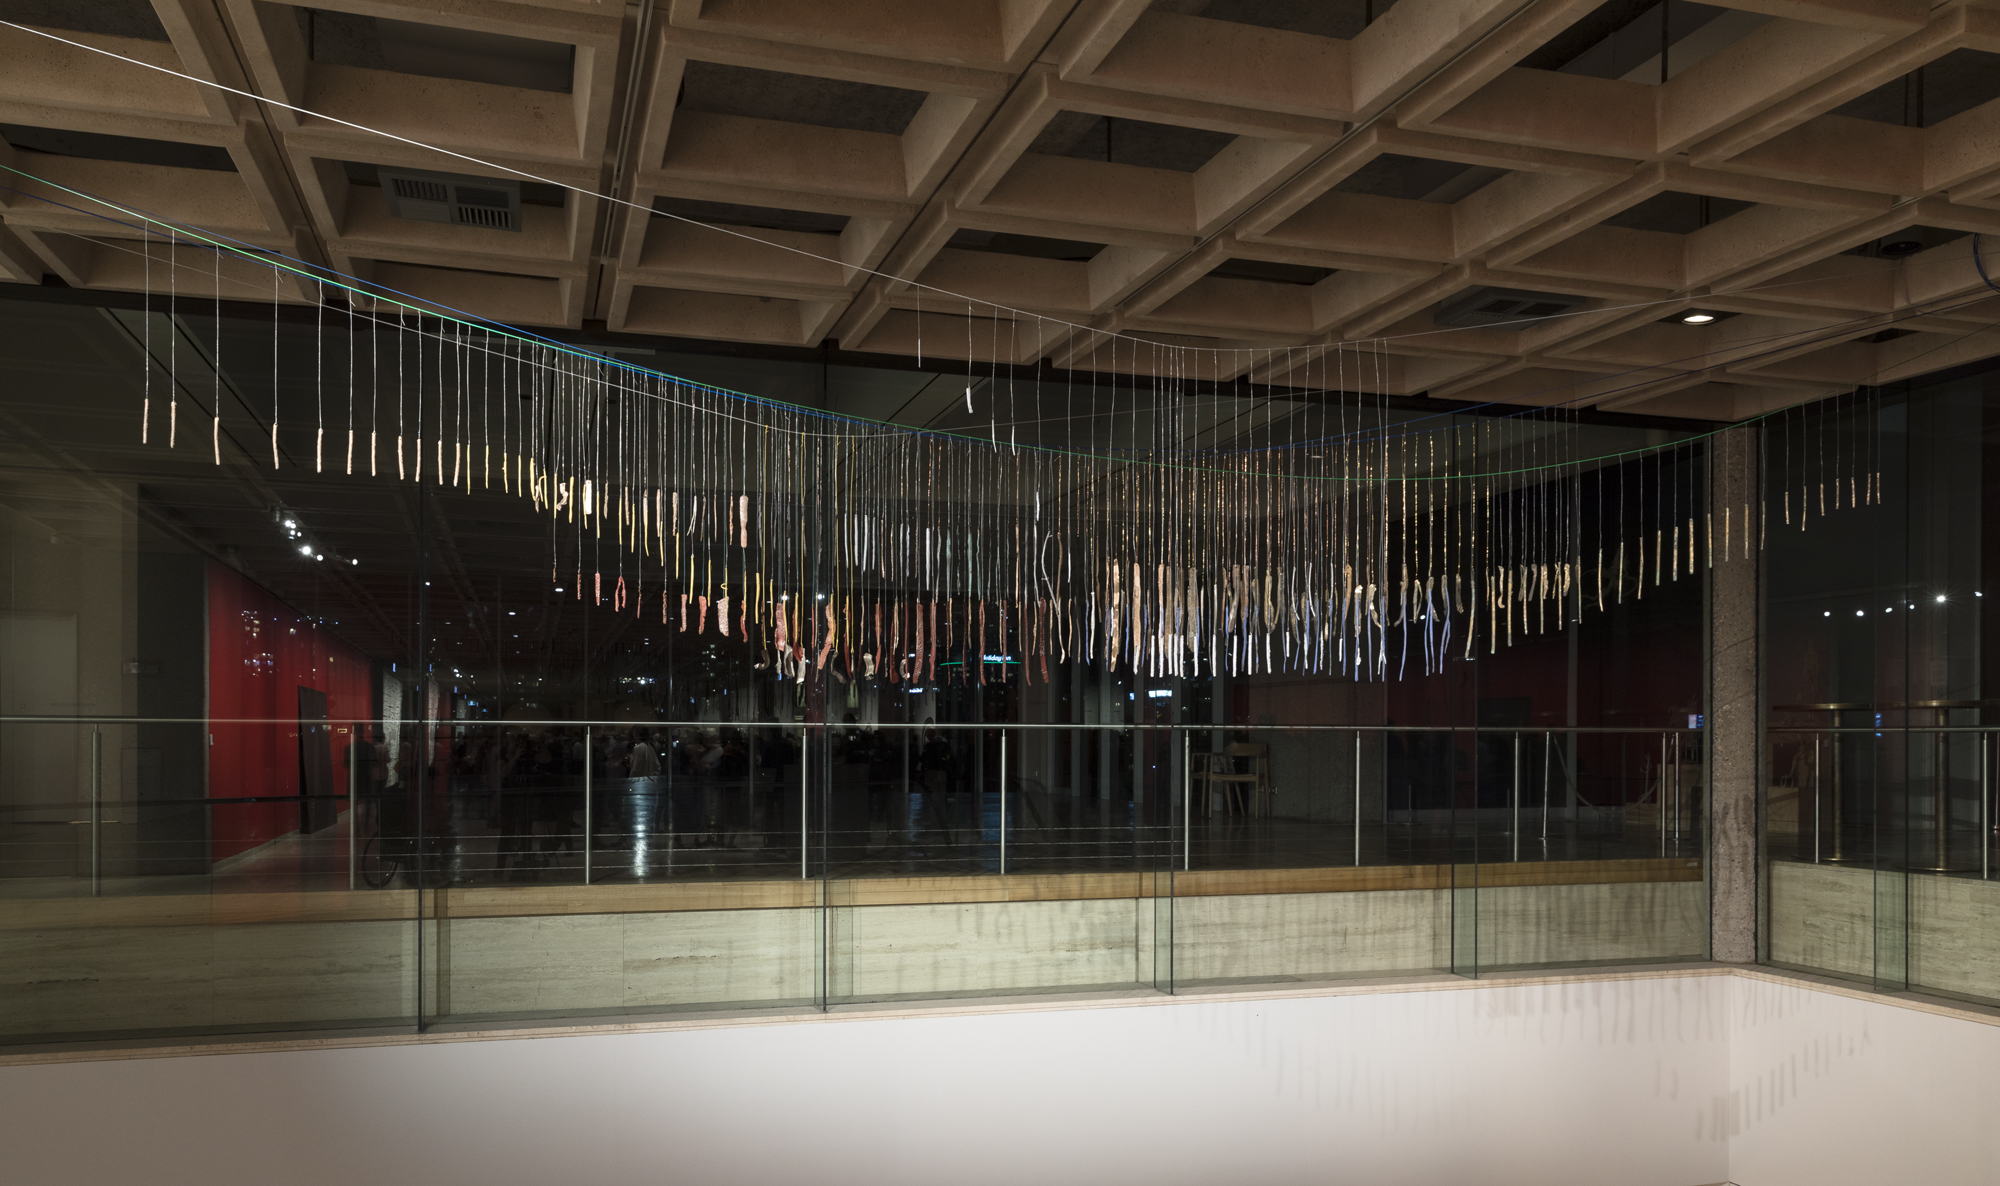 I'm actually weirdly exciting , 2018 Bronze, white brass, brass, silver, wire, PVC coated wire  Dimensions variable Installation view of the 21st Biennale of Sydney (2018) at the Art Gallery of New South Wales. Photograph: silversalt photography